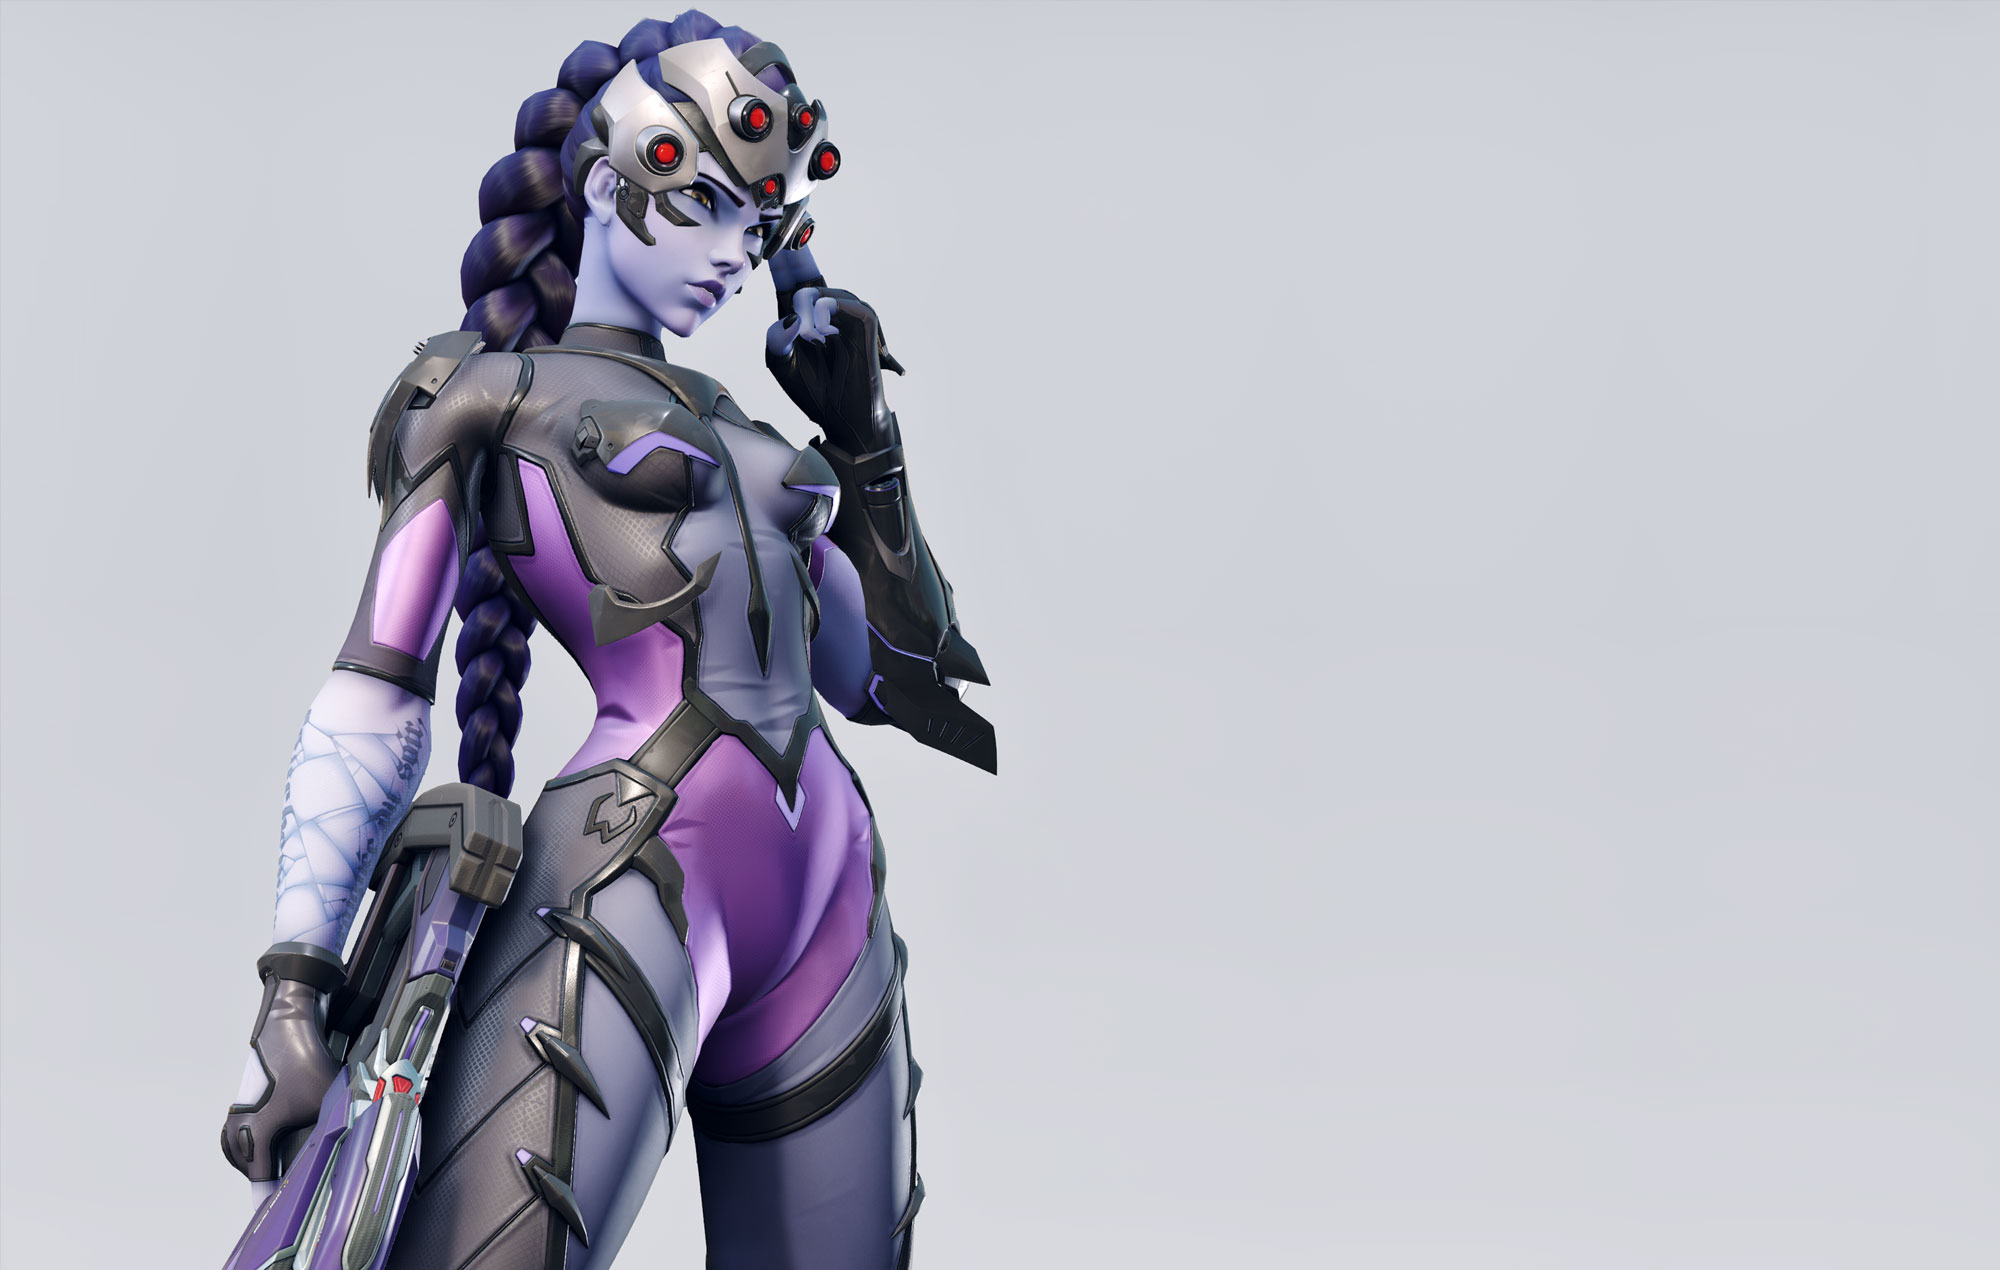 In-depth 'Overwatch 2' video reveals new stages, Hero Missions and character redesigns - NME